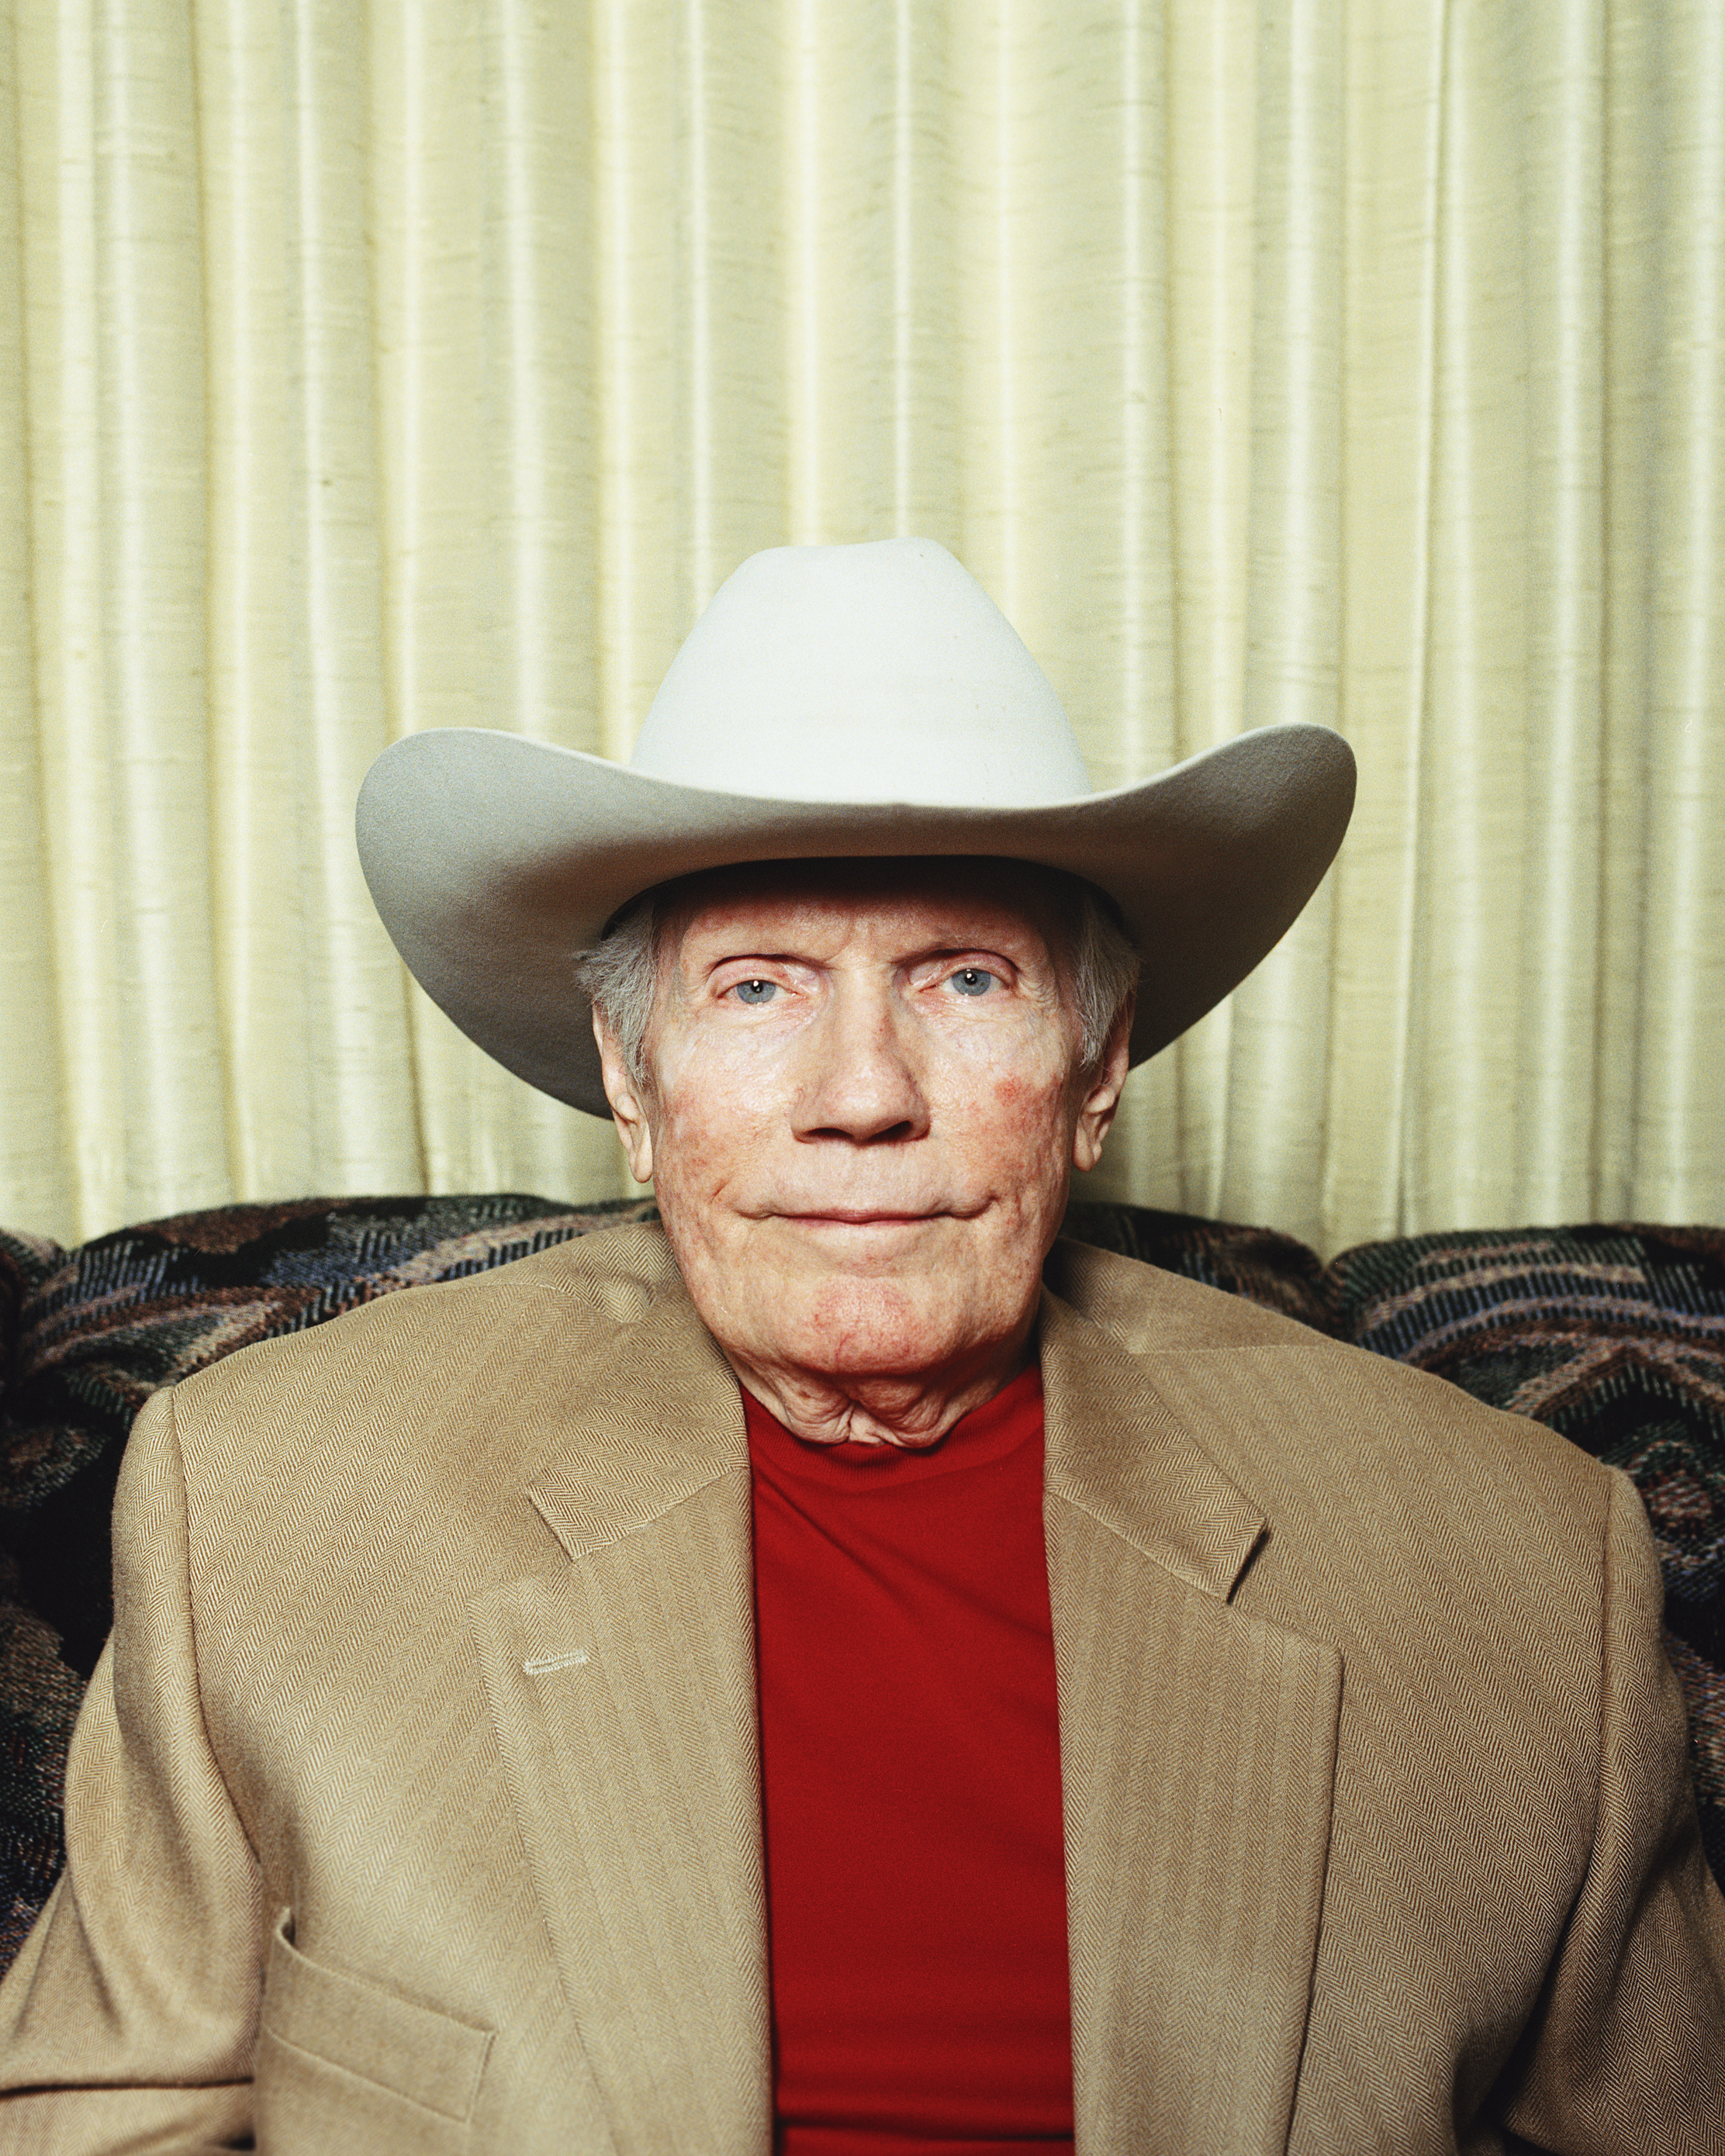 Phelps, photographed in 2010, died on March 20 at age 84